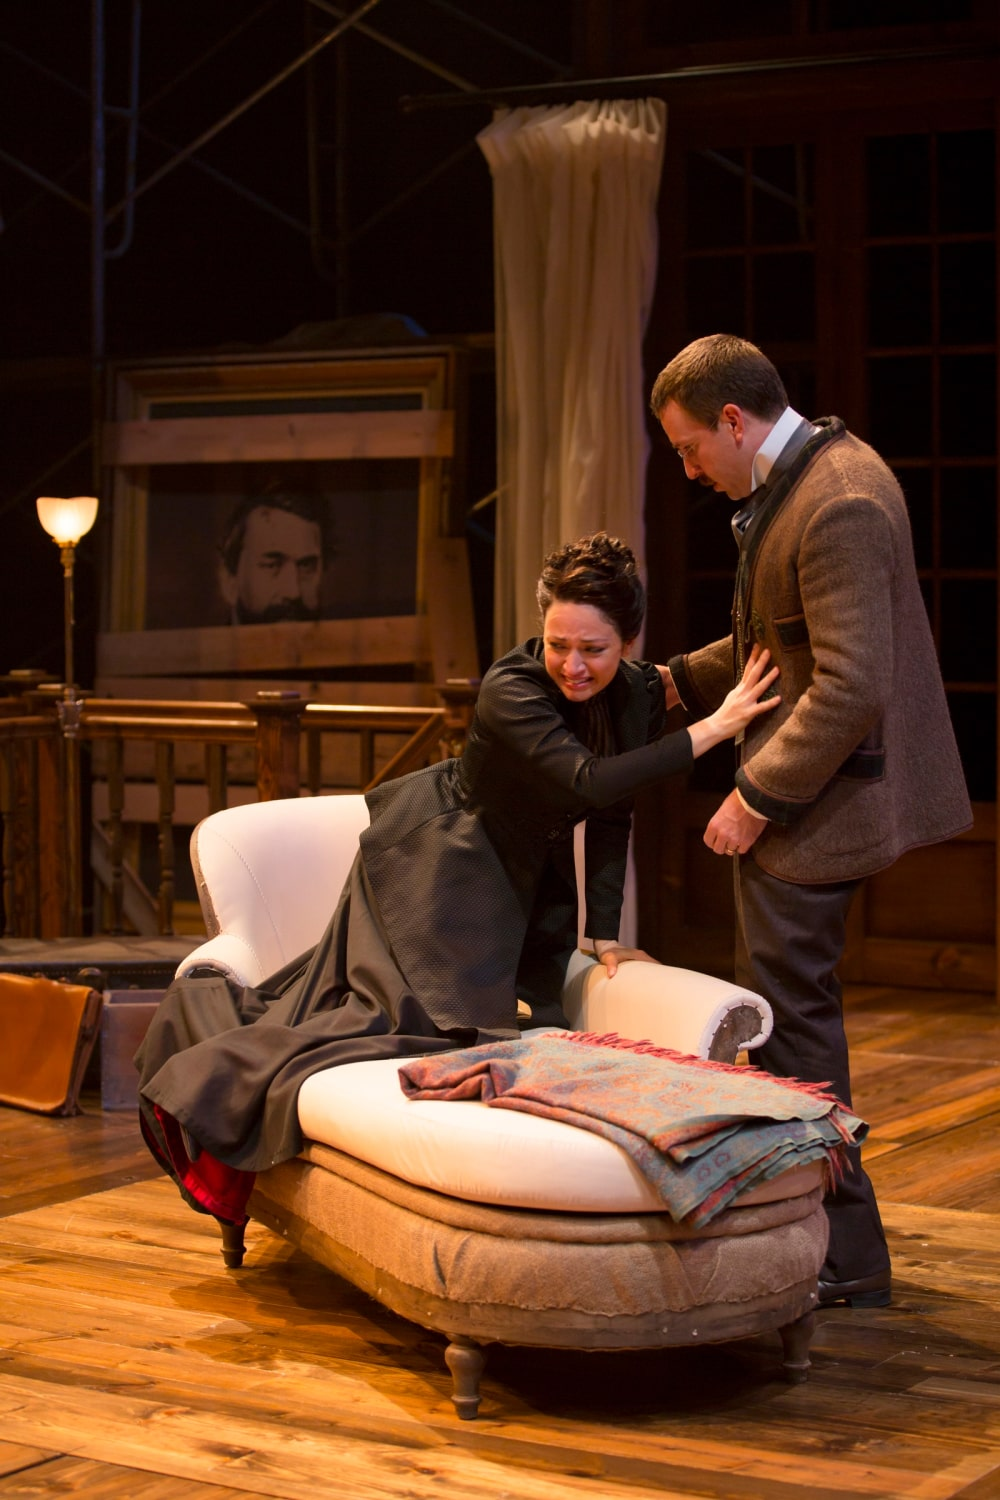 Distraught woman in black suit dress kneels on chaise reaching for spectacled man standing beside.